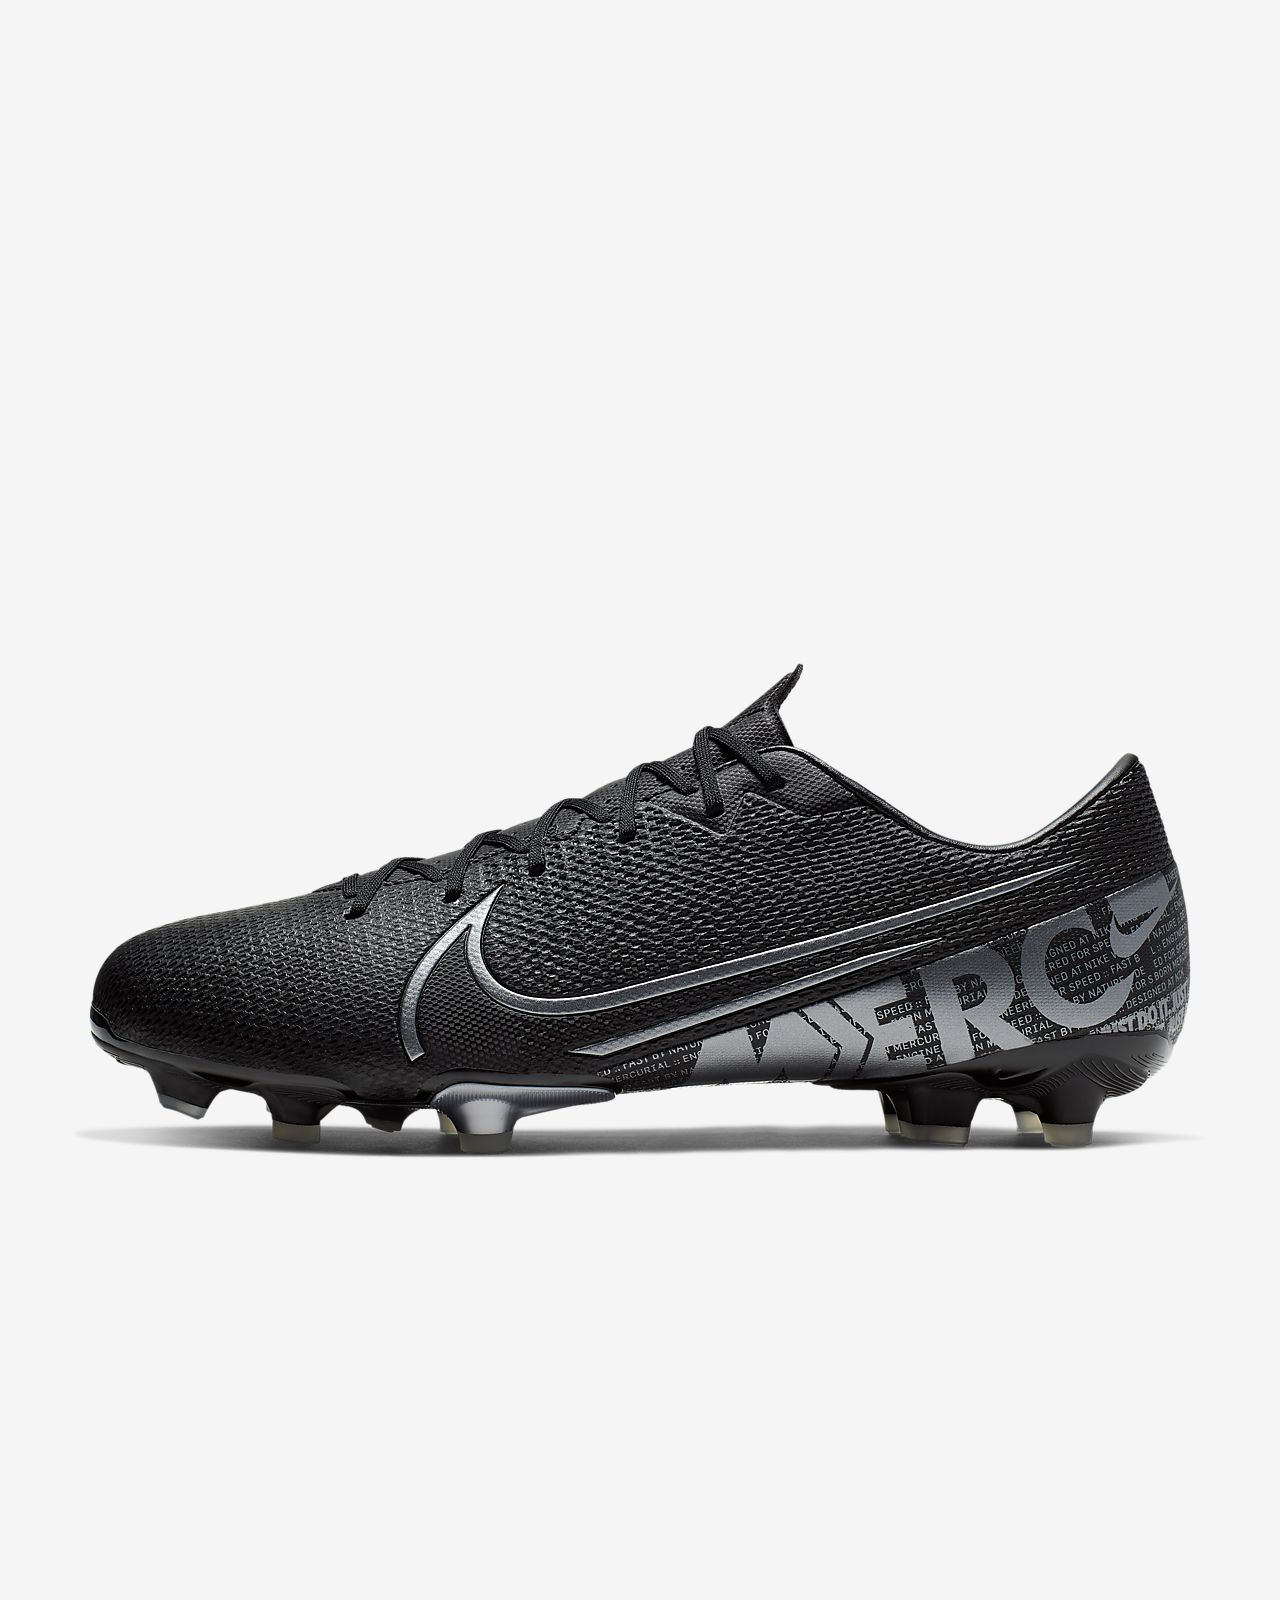 Nike Mercurial Vapor 13 Academy MG Multi Ground Football Boot